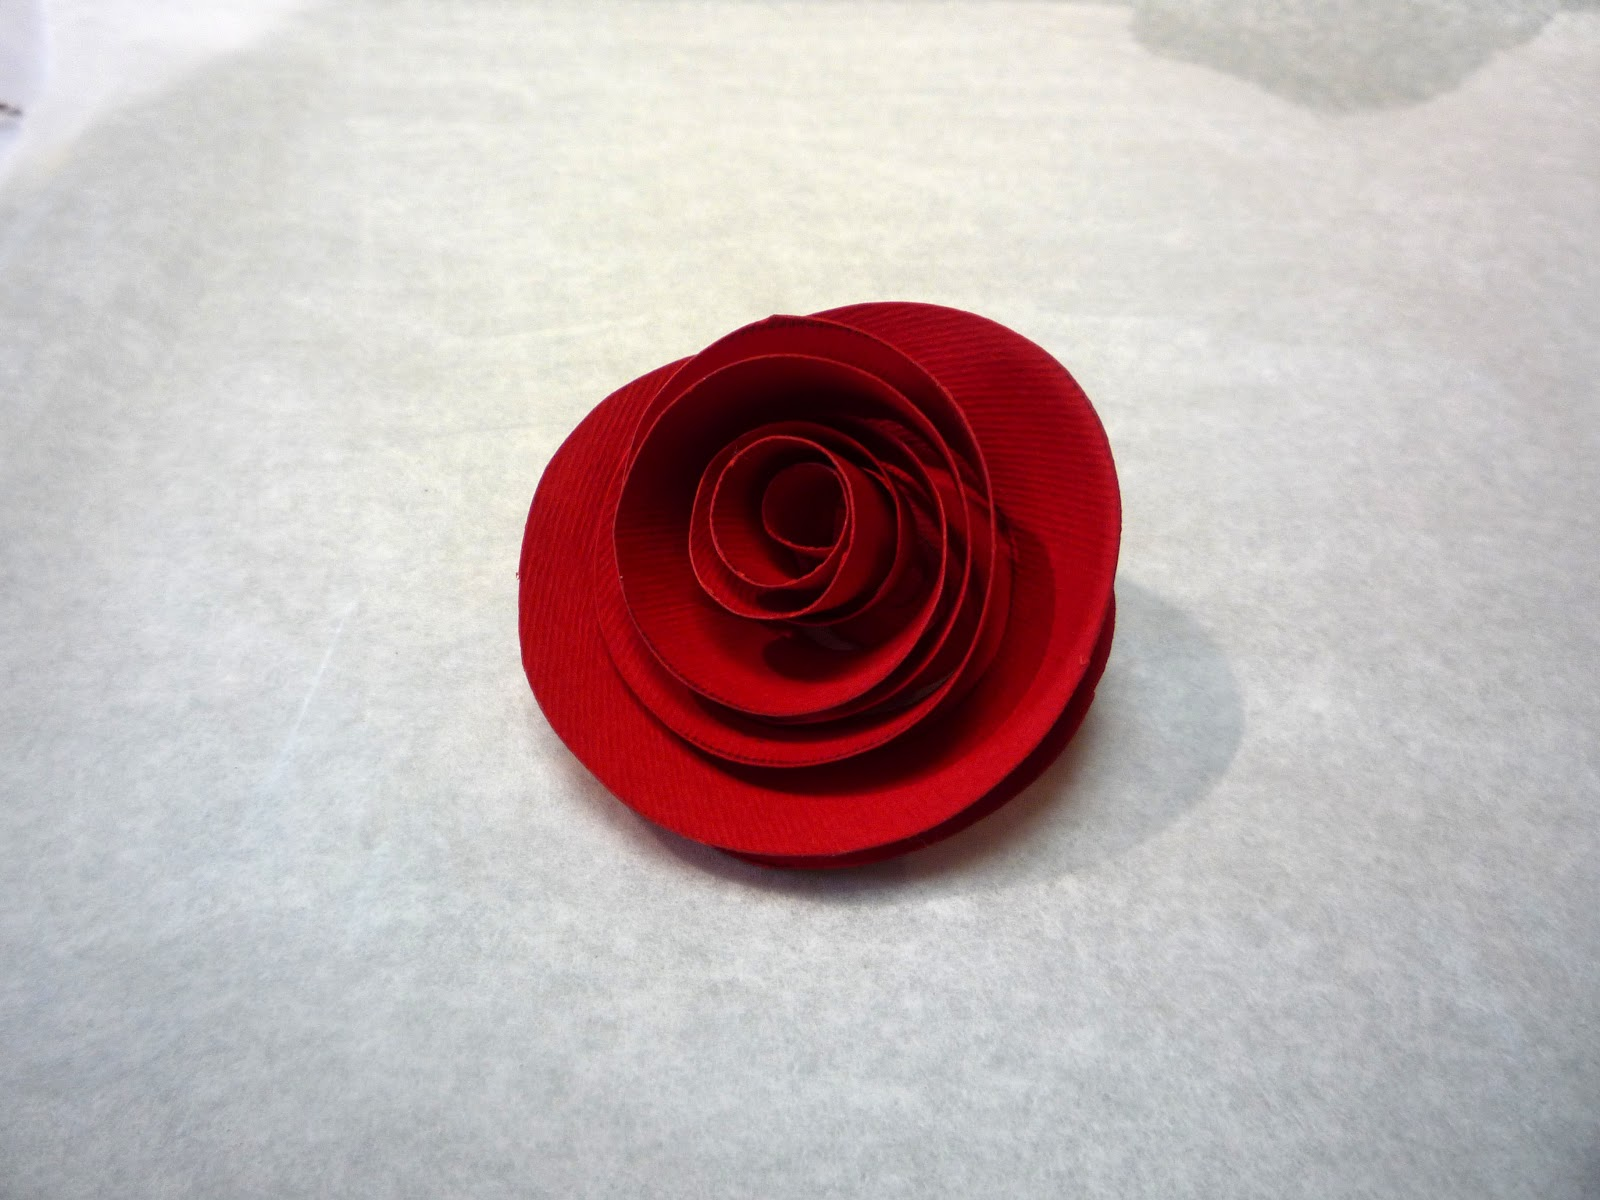 Comment faire une rose en papier selfpackaging blog - Faire des roses en papier ...